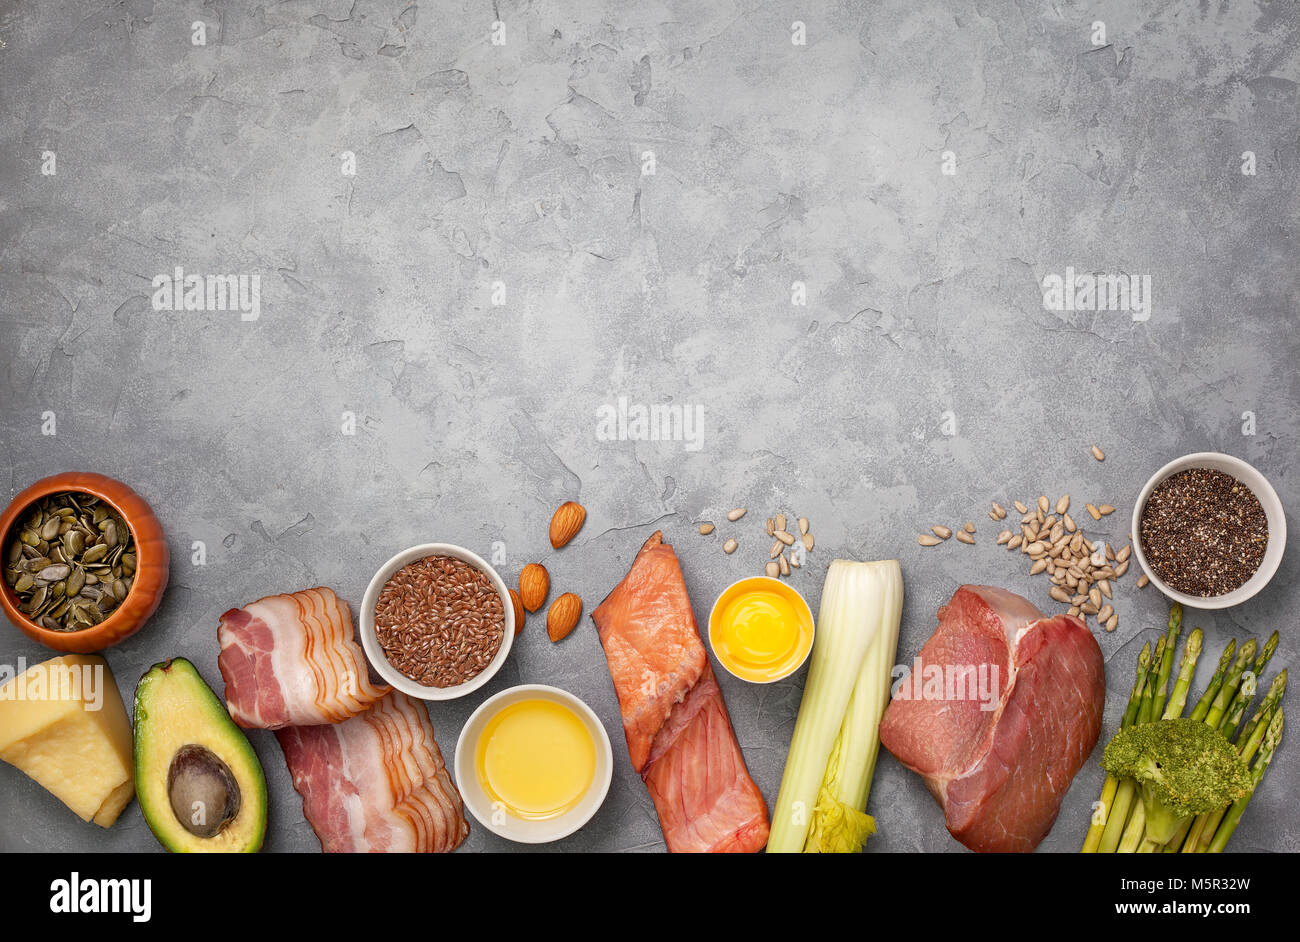 Ingredients For Ketogenic Diet Meat Bacon Fish Broccoli Stock